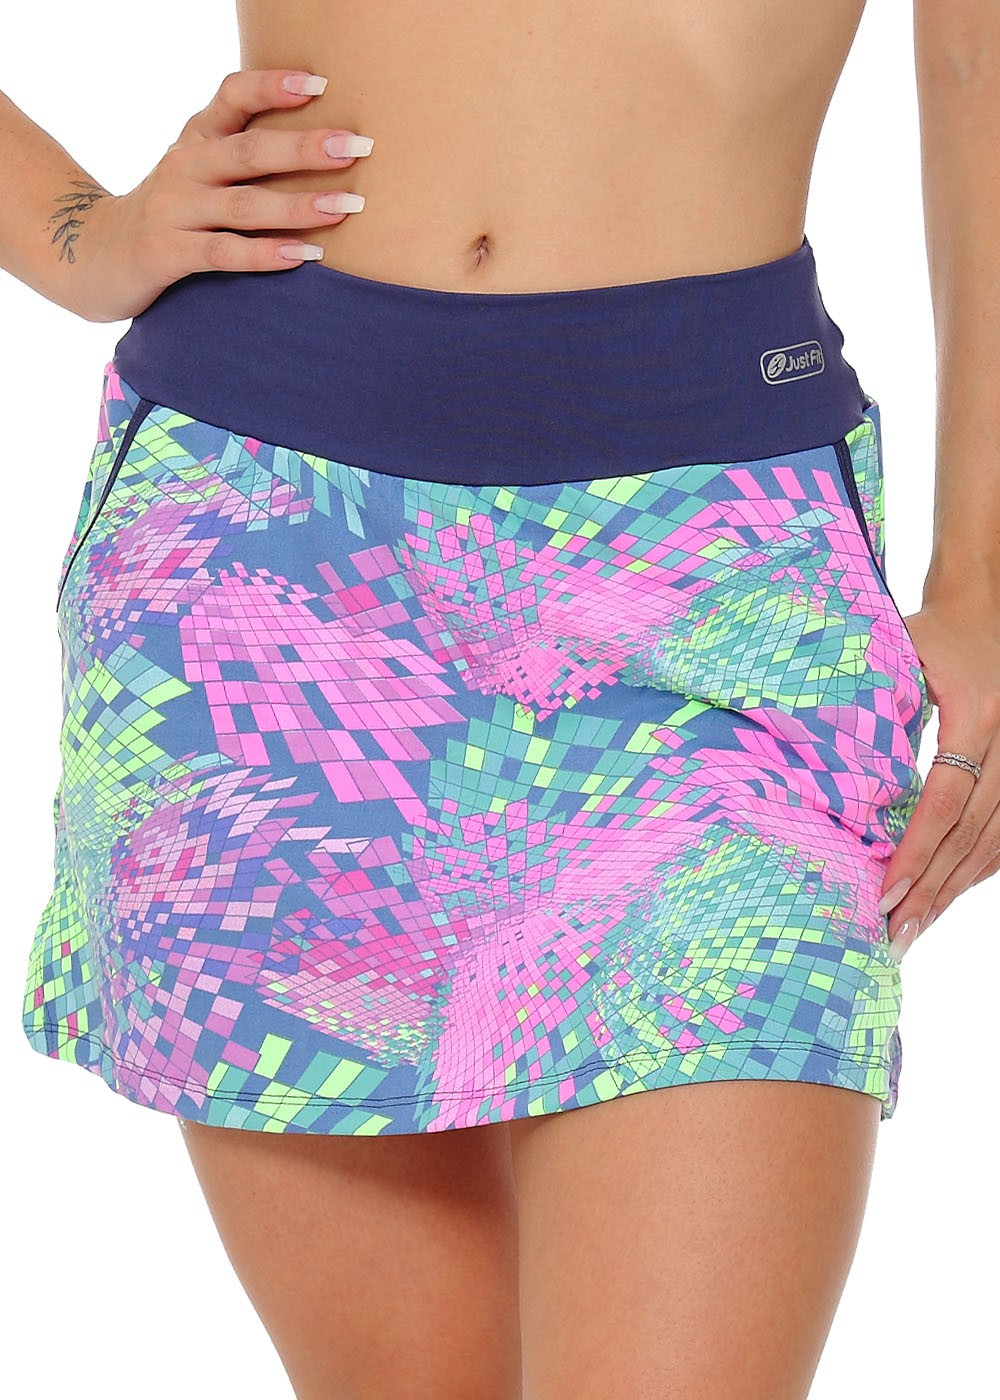 SHORTS SAIA FIT UP JUS FIT - MARINHO/MOSAICO